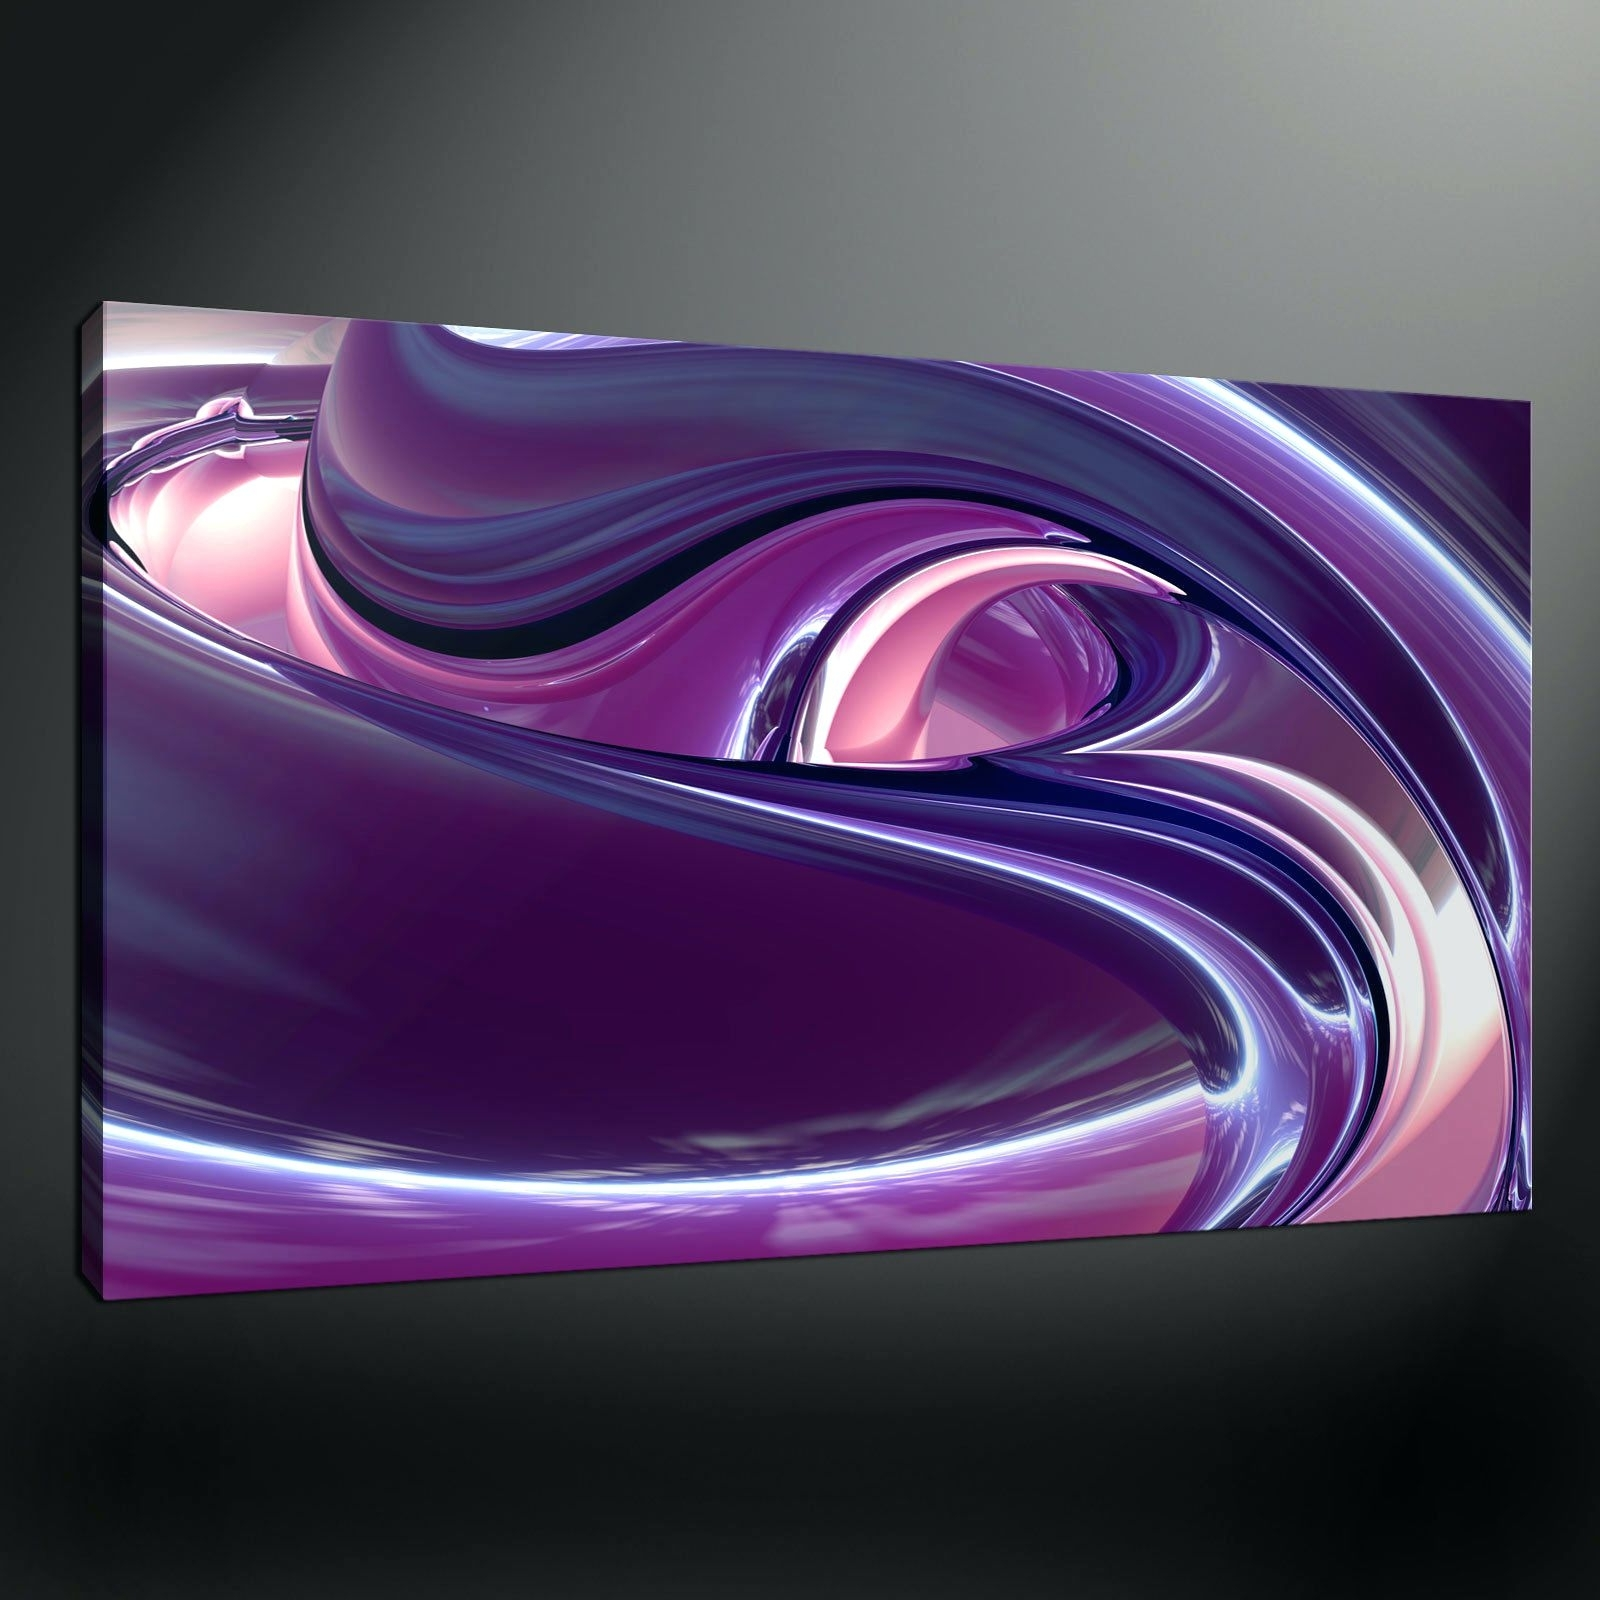 Canvas Wall Art In Purple Pertaining To Widely Used Wall Arts ~ Purple Flower Canvas Wall Art Purple Canvas Wall Art (Gallery 11 of 15)